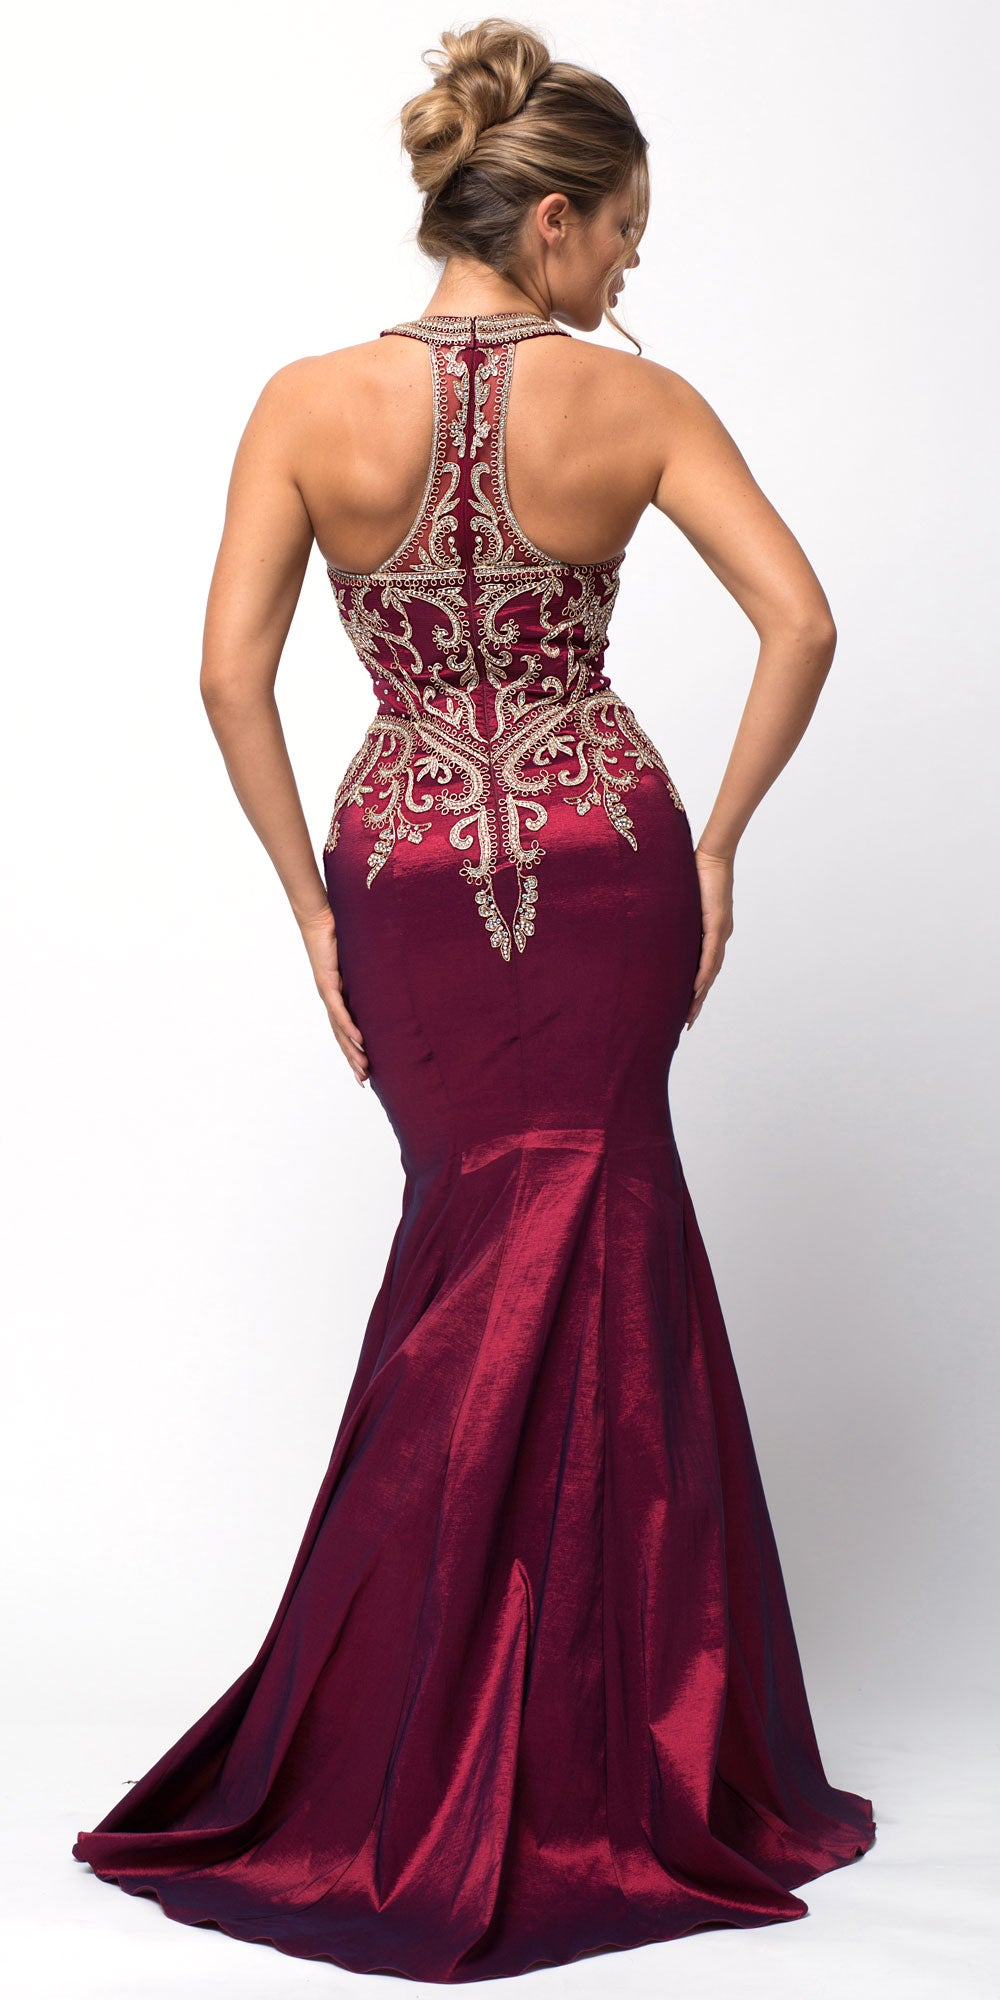 Image of Embellished Bodice Round Neck Fit-n-flare Long Prom Dress back in Burgundy